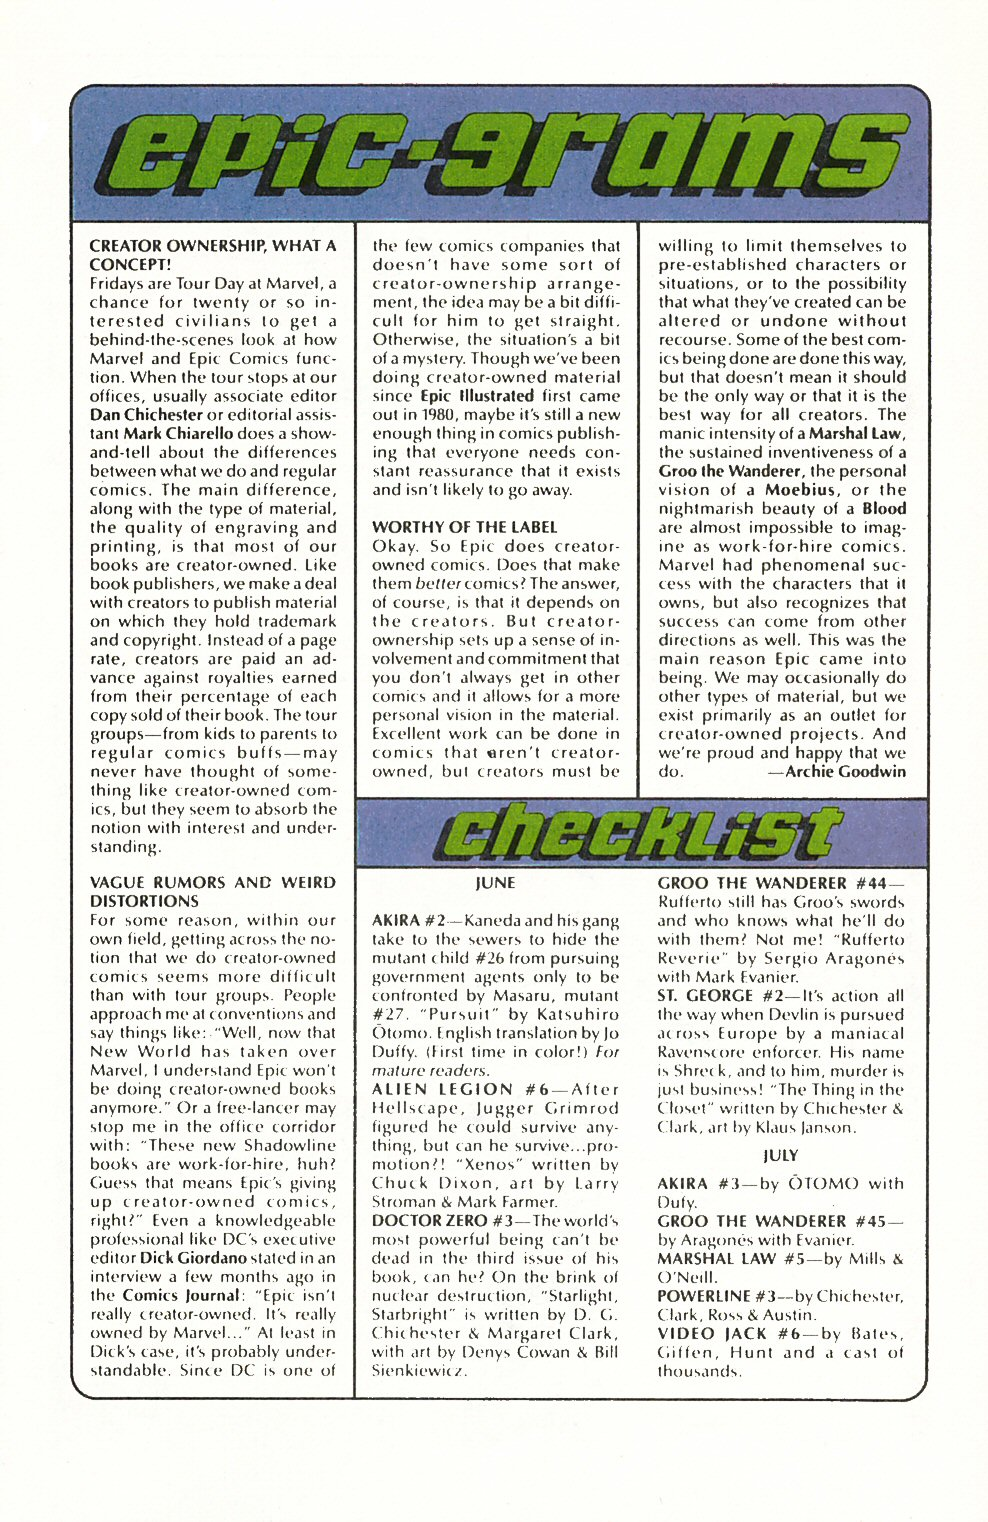 Read online St. George comic -  Issue #2 - 31